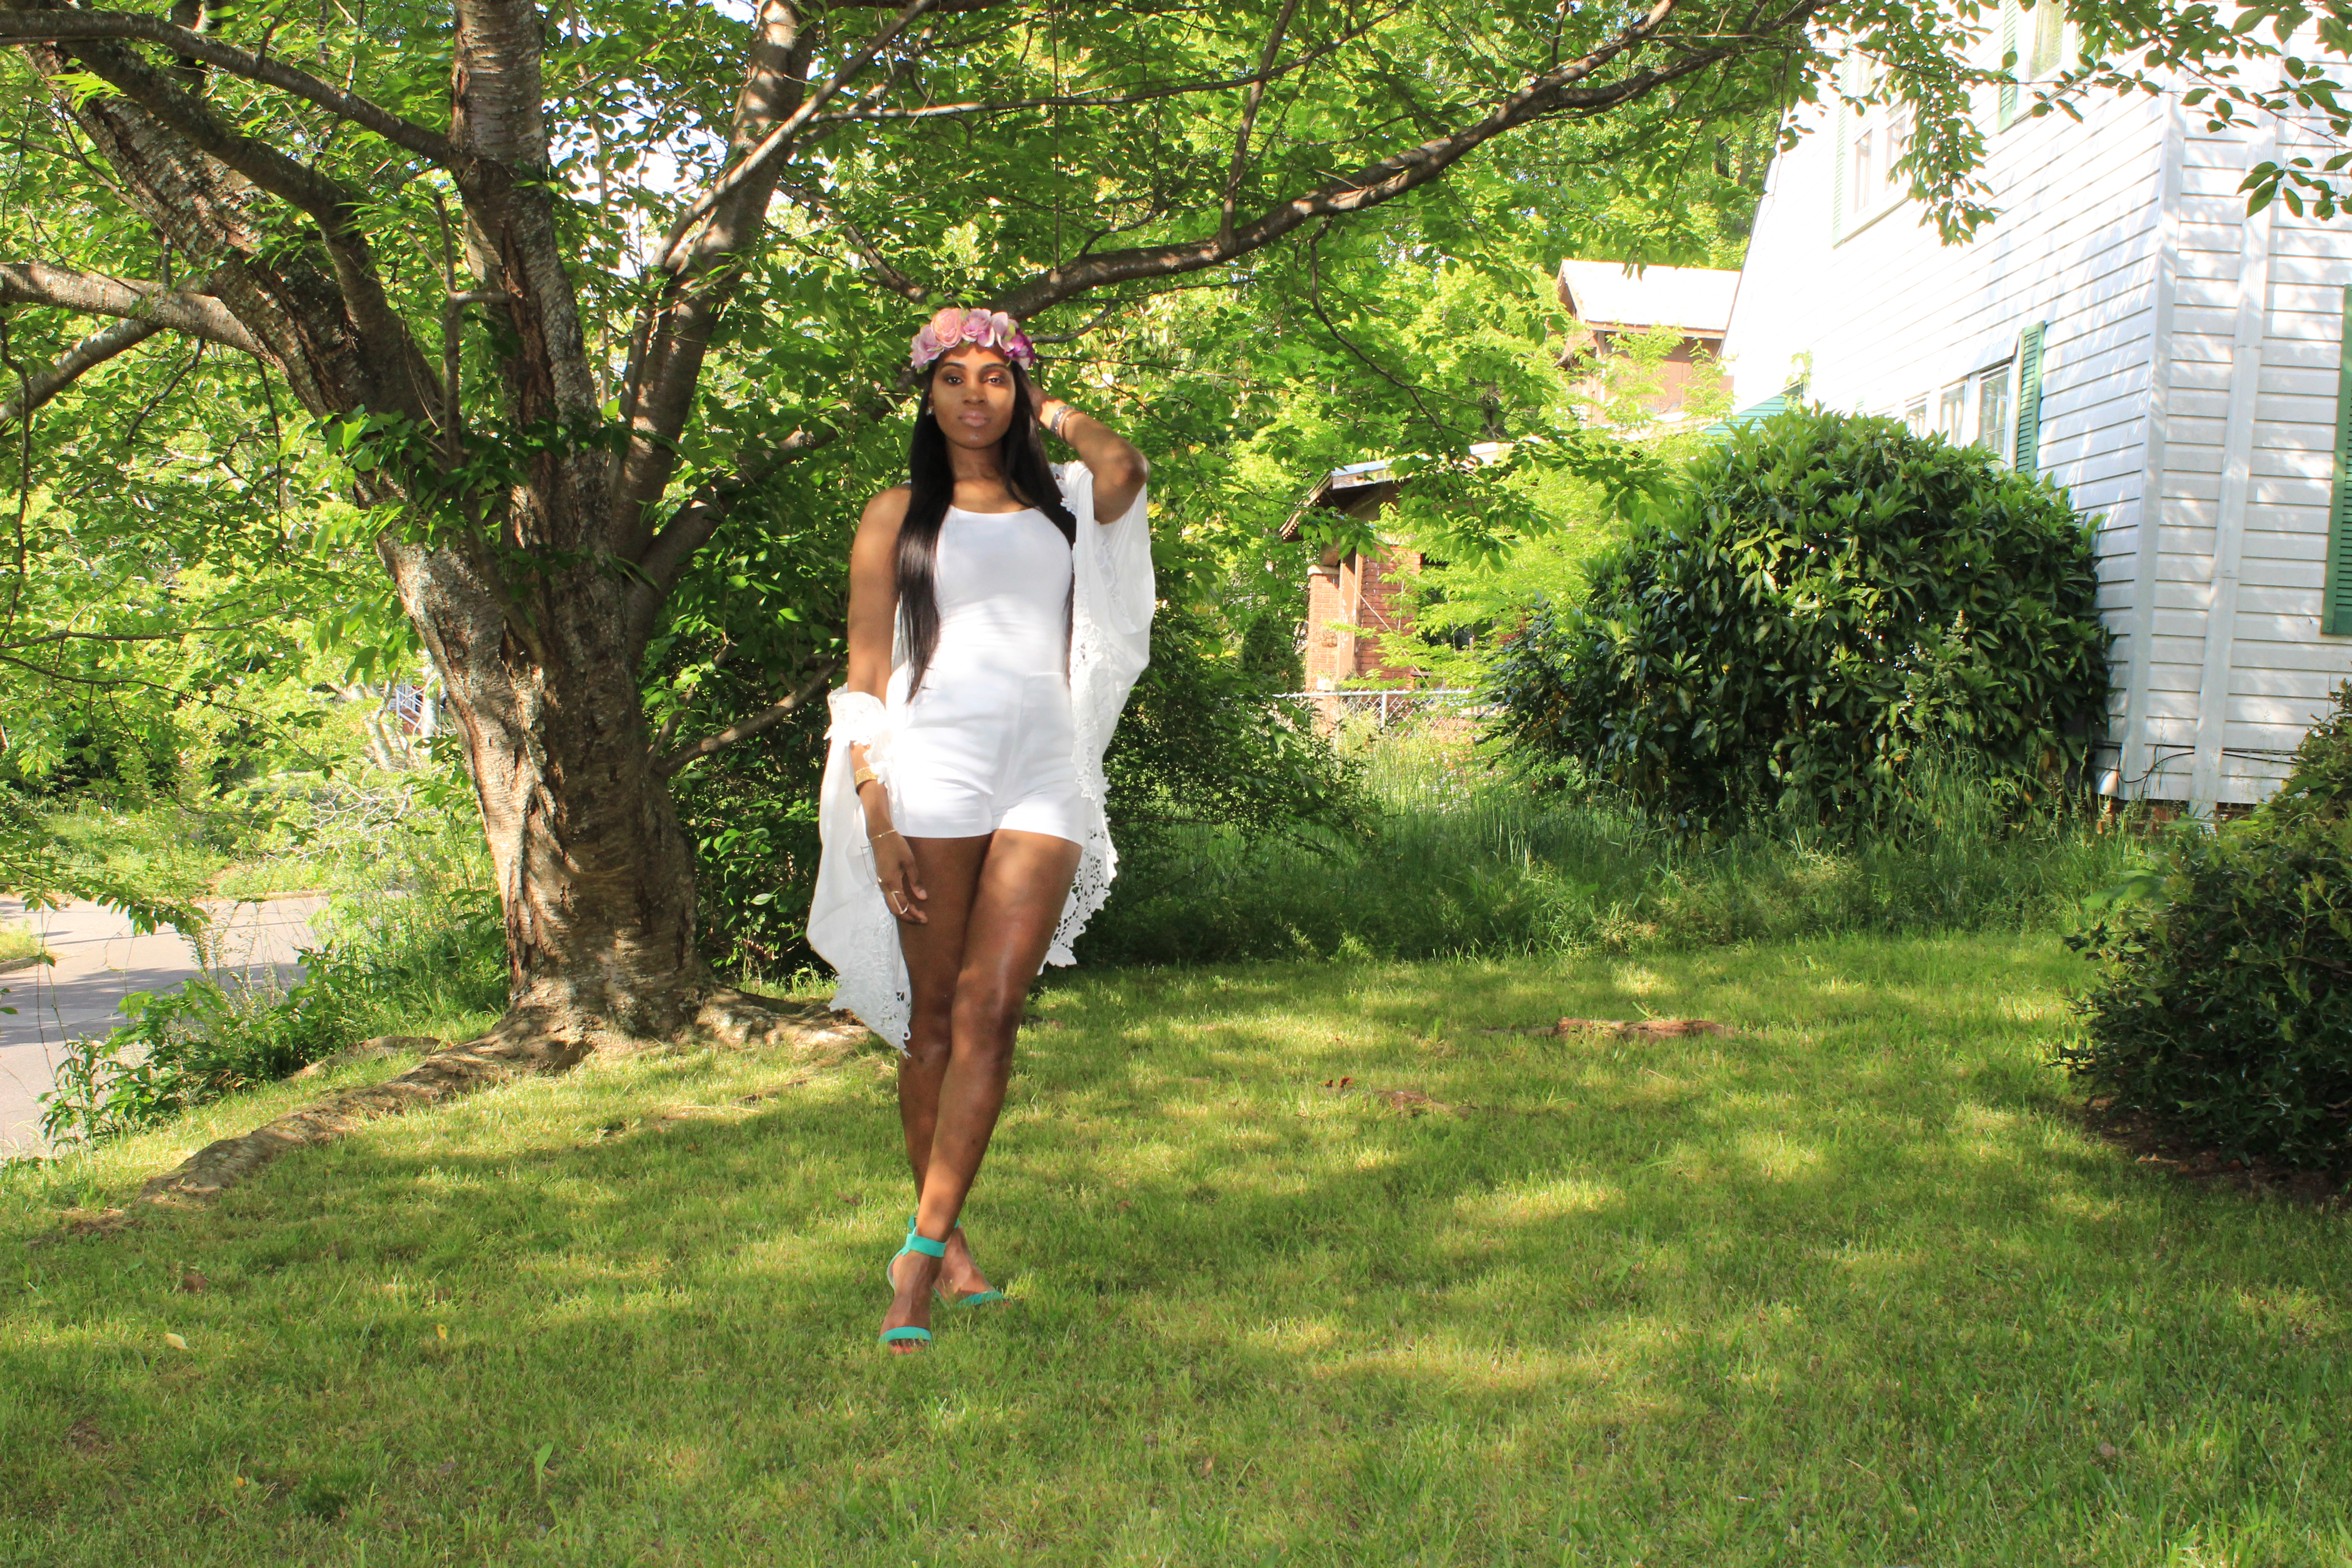 Style-Files-Target-Merona-White-Cocoon-forever21-White-high-waist-shorts-justfab-Paean-seafoam-sandals-flower-headband-Oohlalablog-12